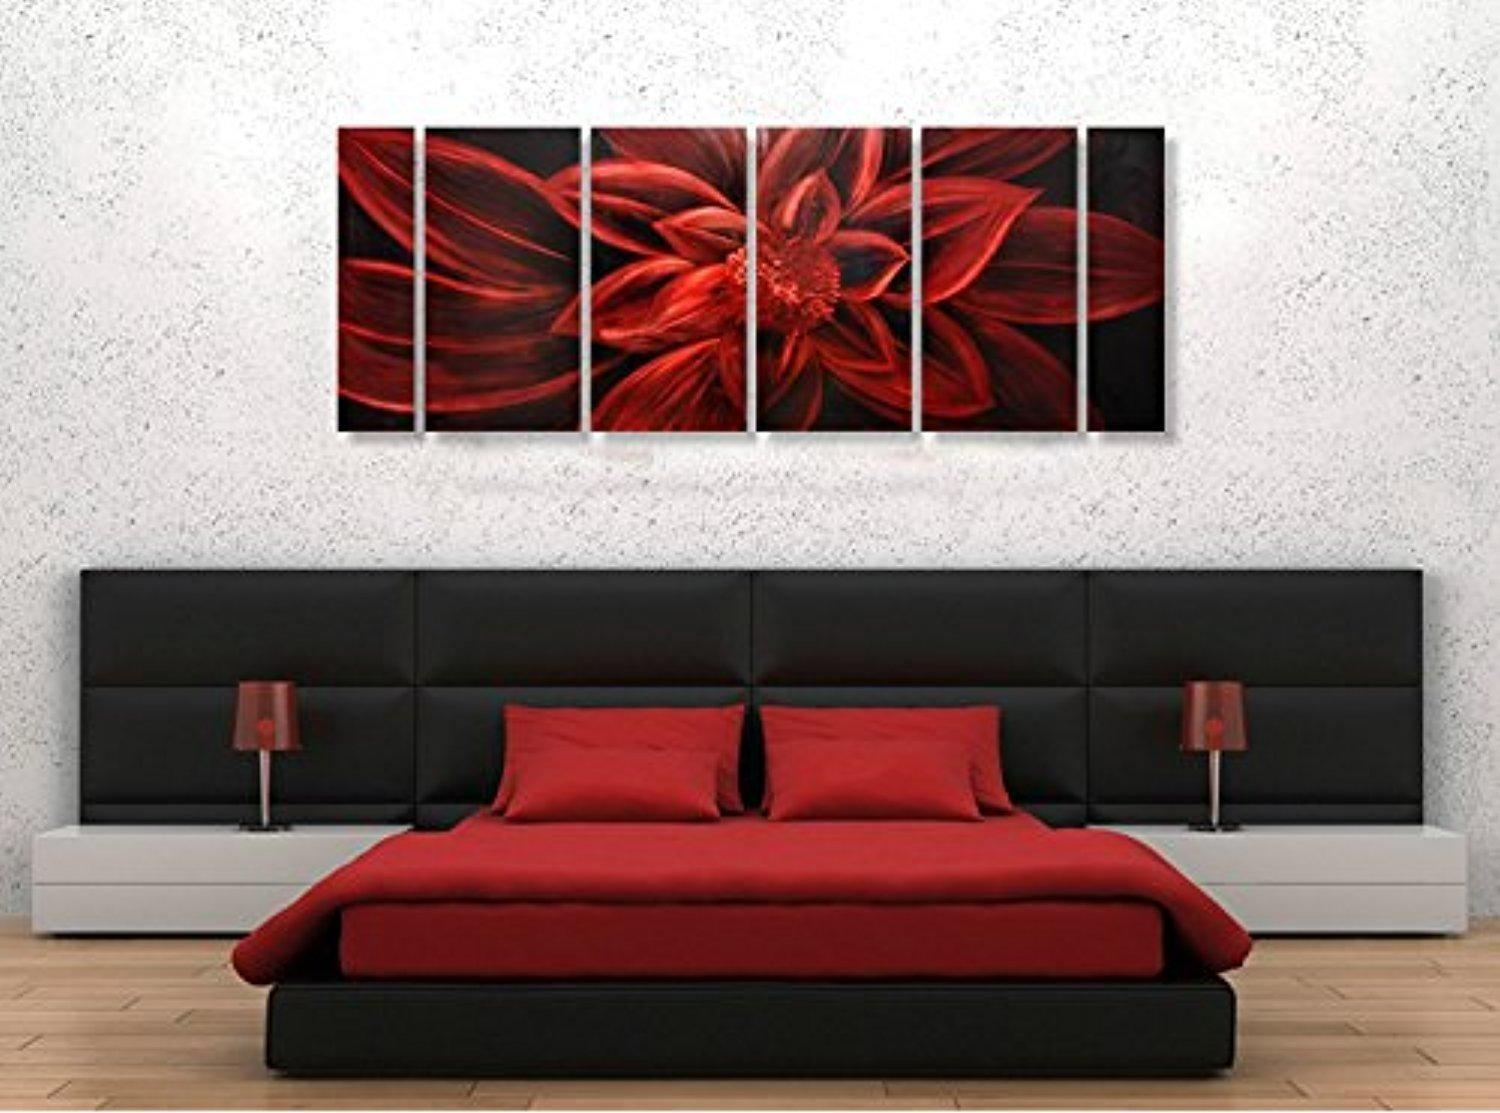 Winpeak Art Original Handcraft Red Abstract Flower Metal Wall Art With Red Flower Metal Wall Art (View 20 of 20)